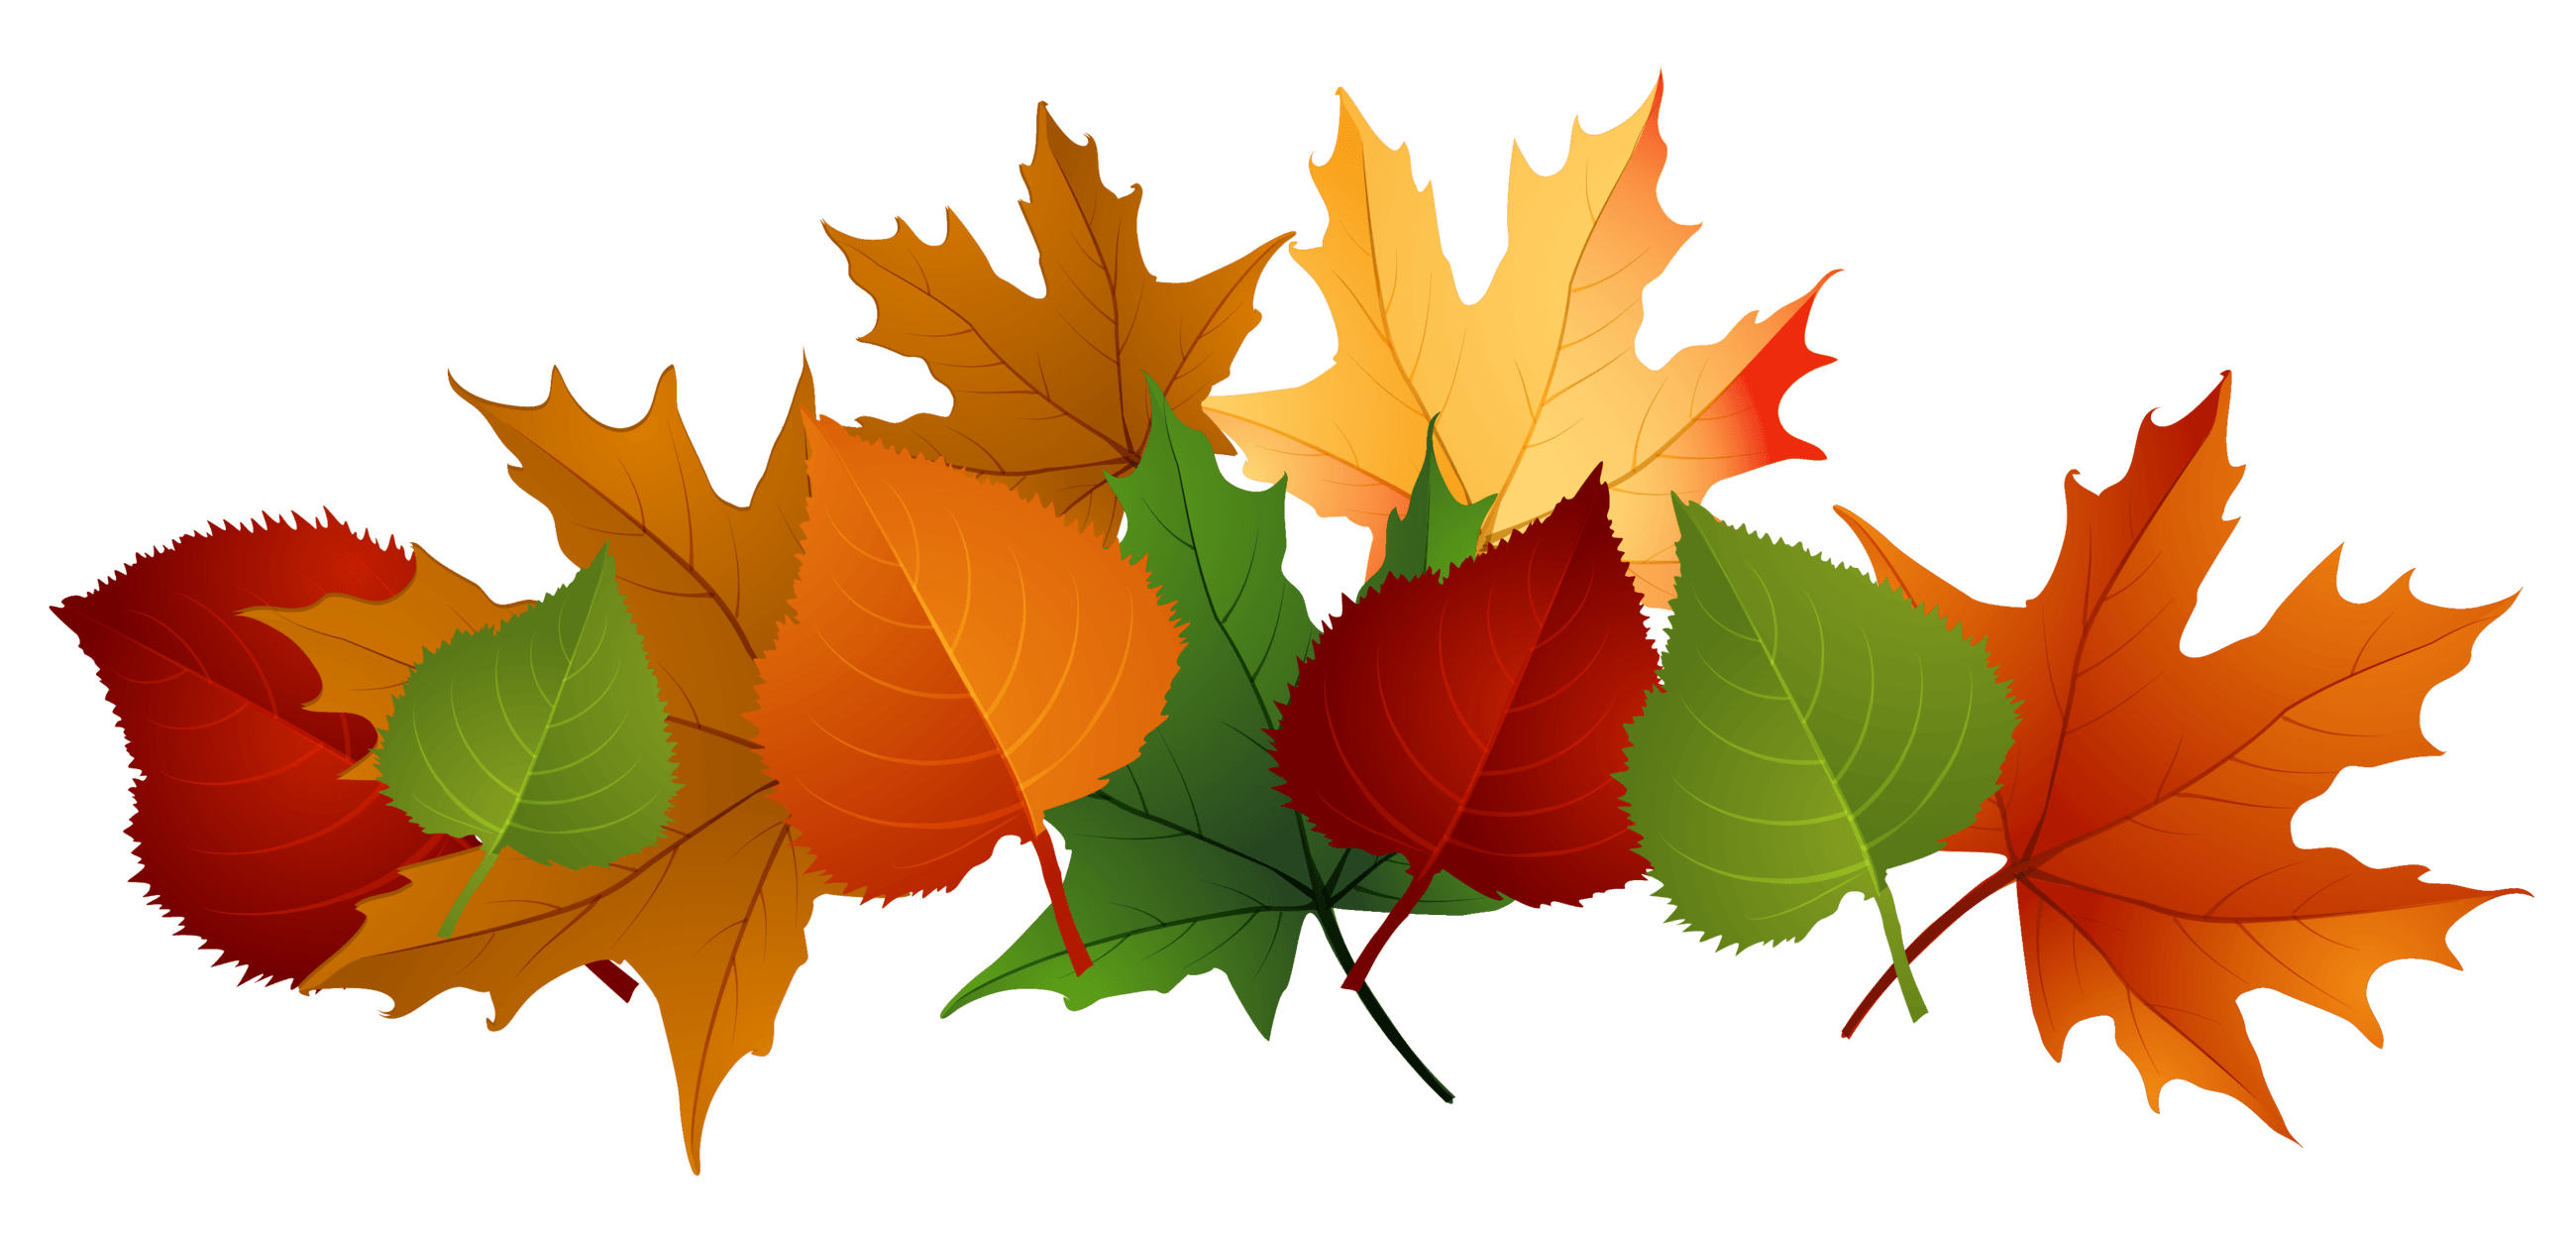 fall images clipart color